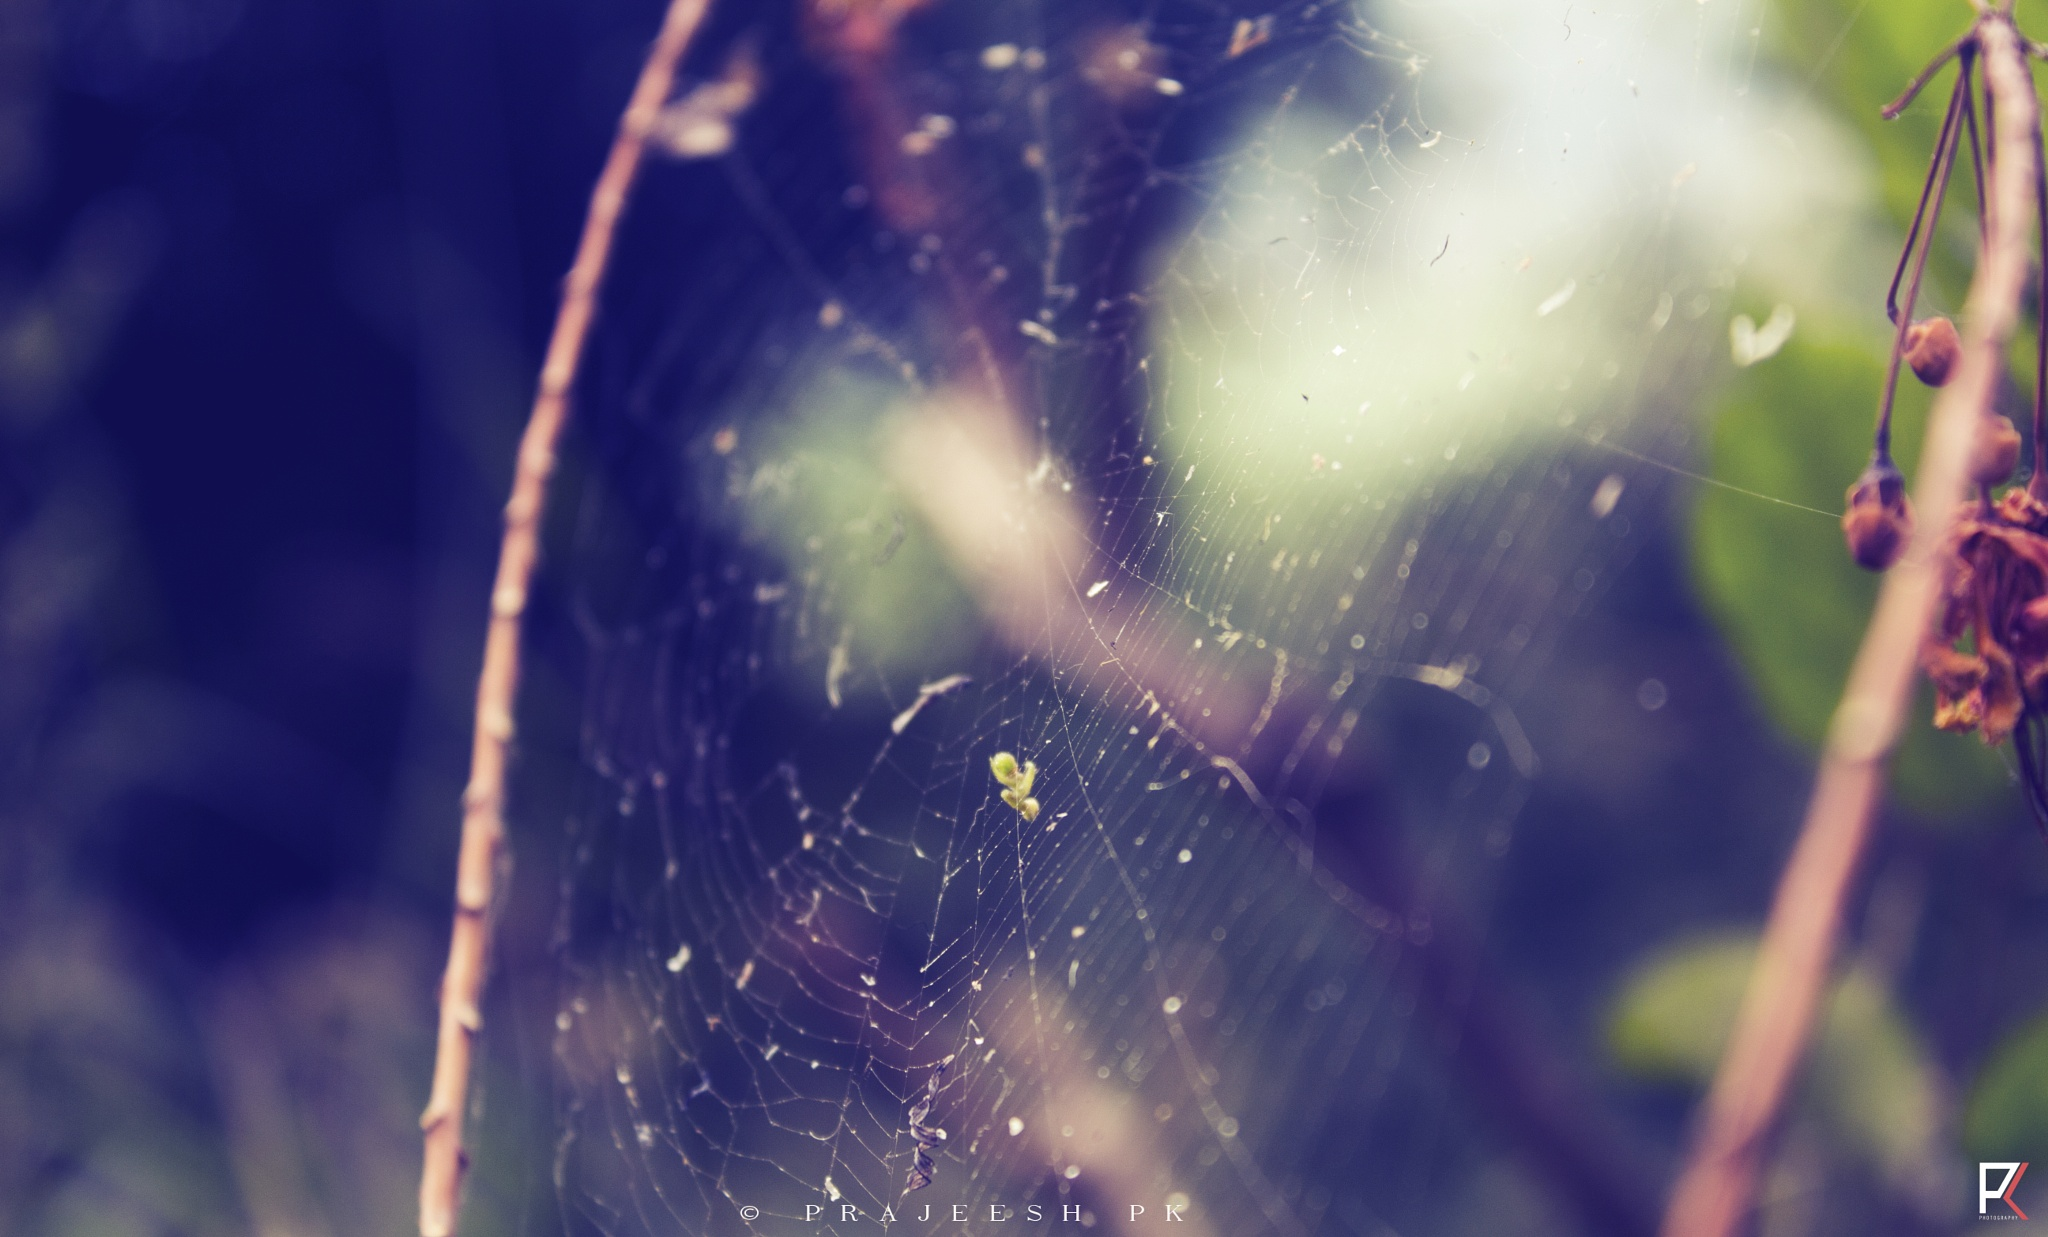 Spider Web  by PK